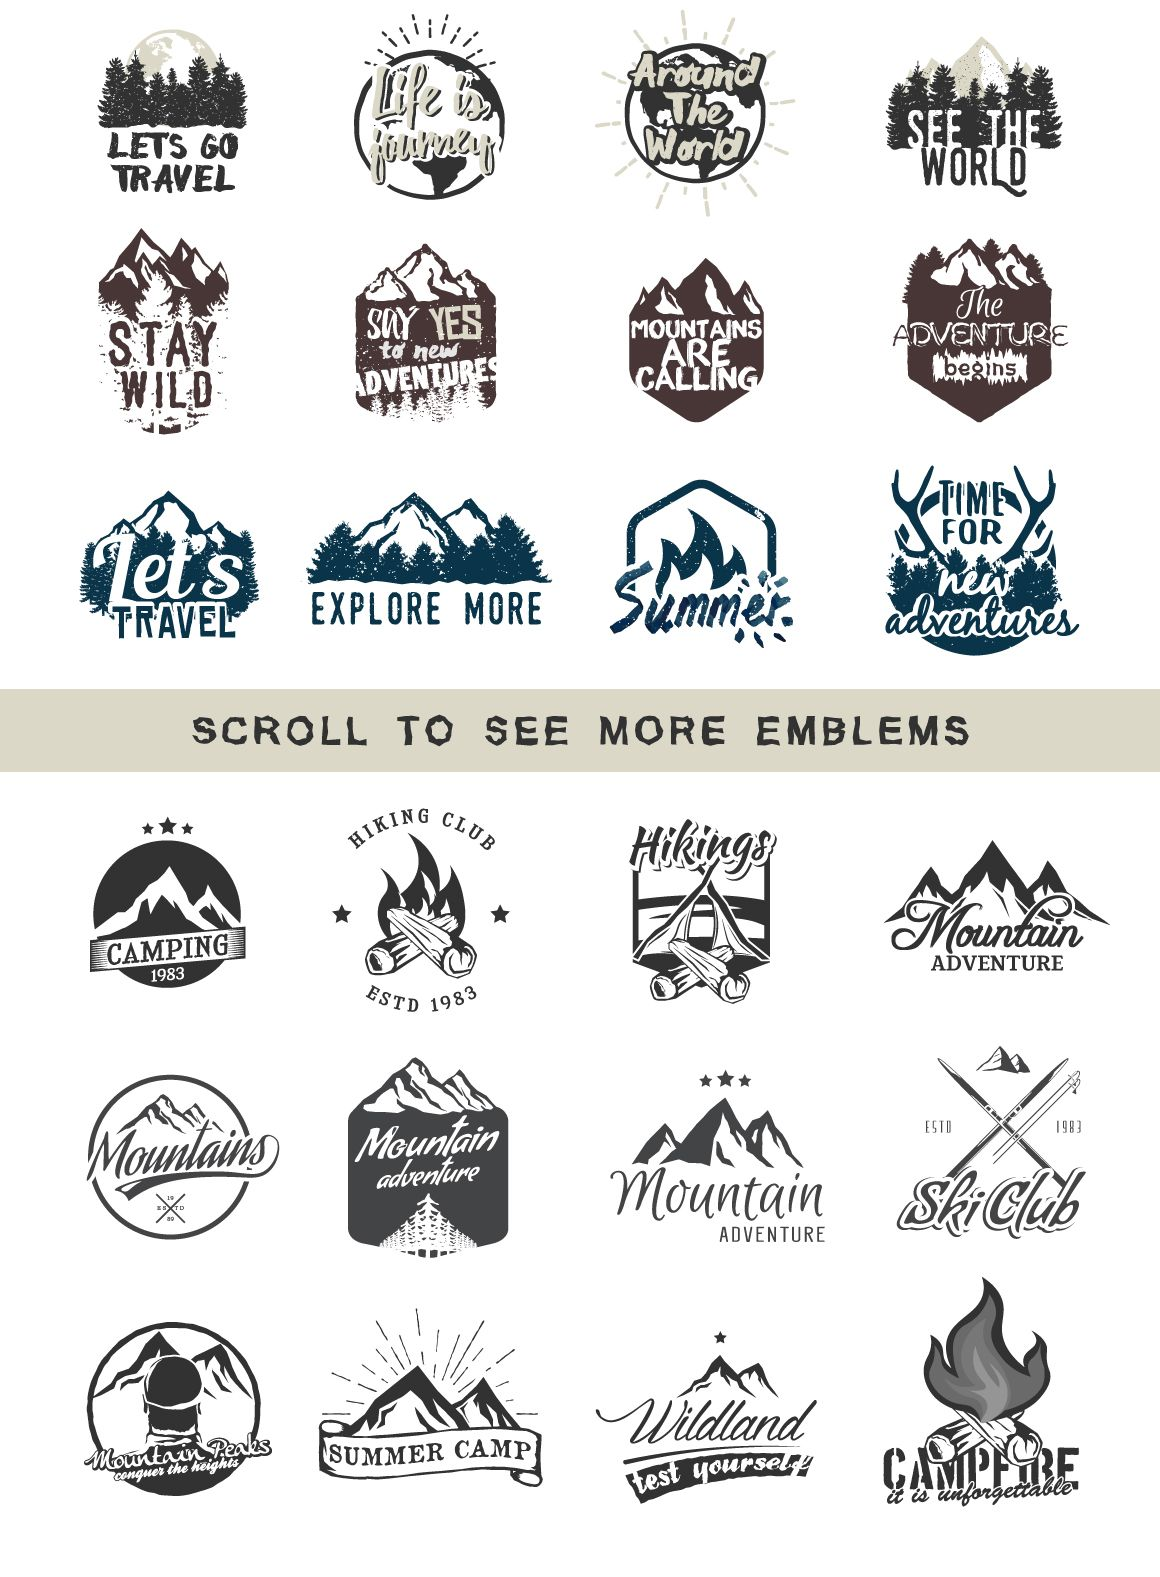 24 ADVENTURE LOGOS PACK by Roman Paslavskiy on.